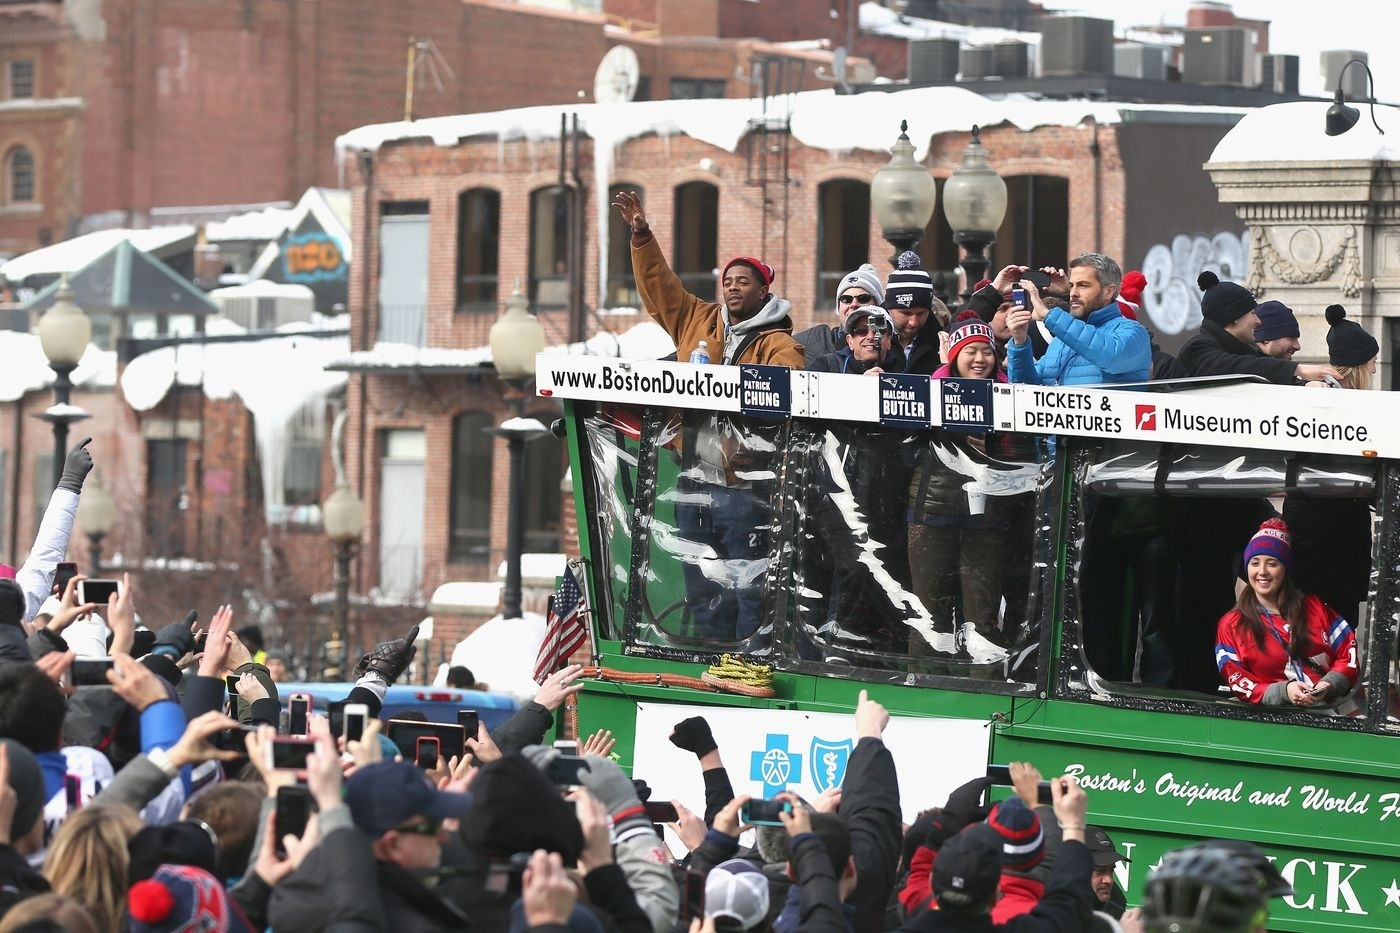 Patriots Super Bowl Parade 2017: Map, Route, And Road inside Atlanta Super Bowl Road Closures Map